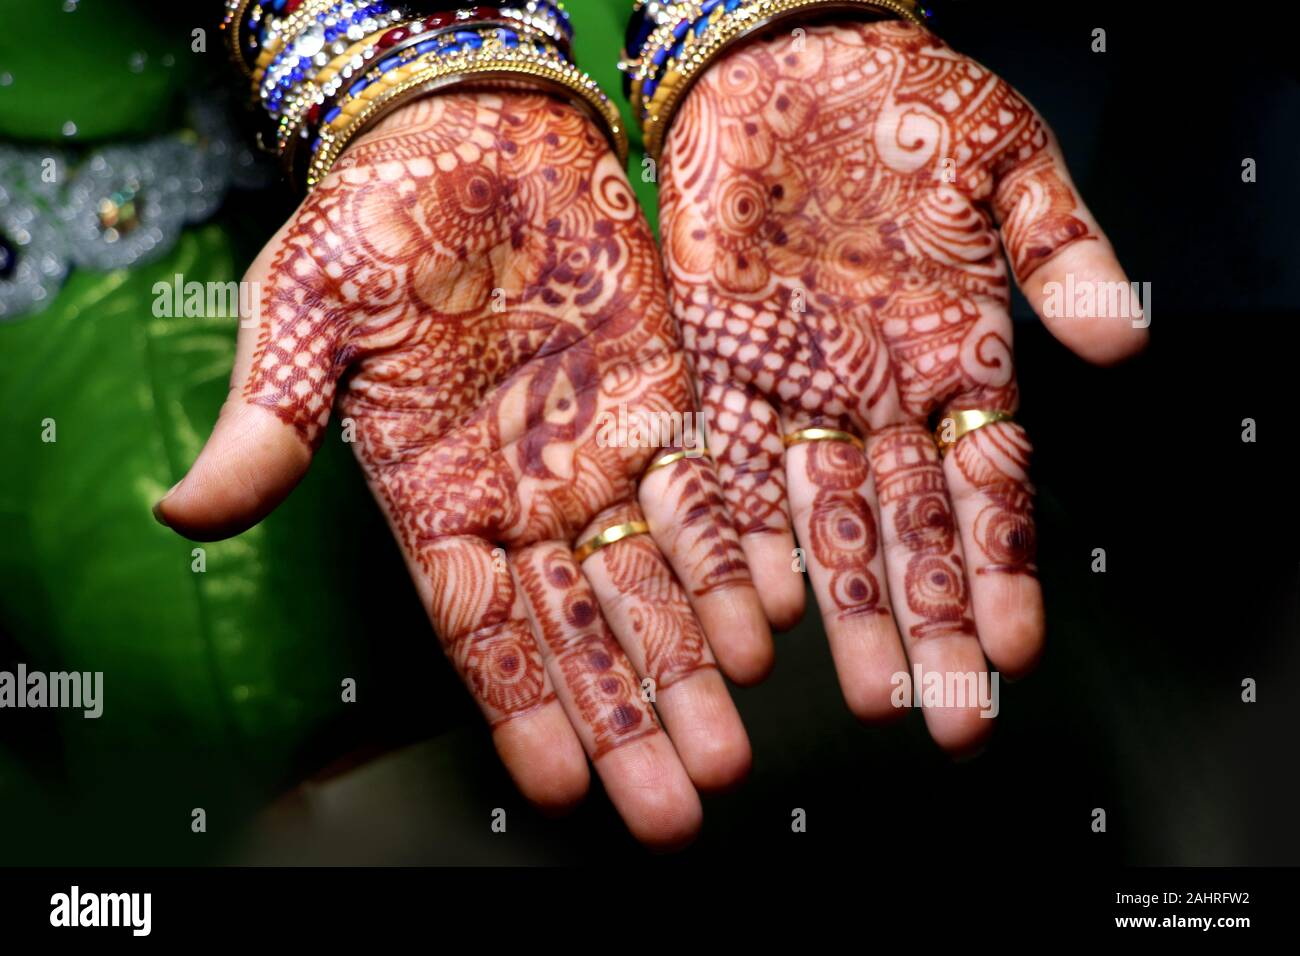 Mehndi Design High Resolution Stock Photography And Images Alamy